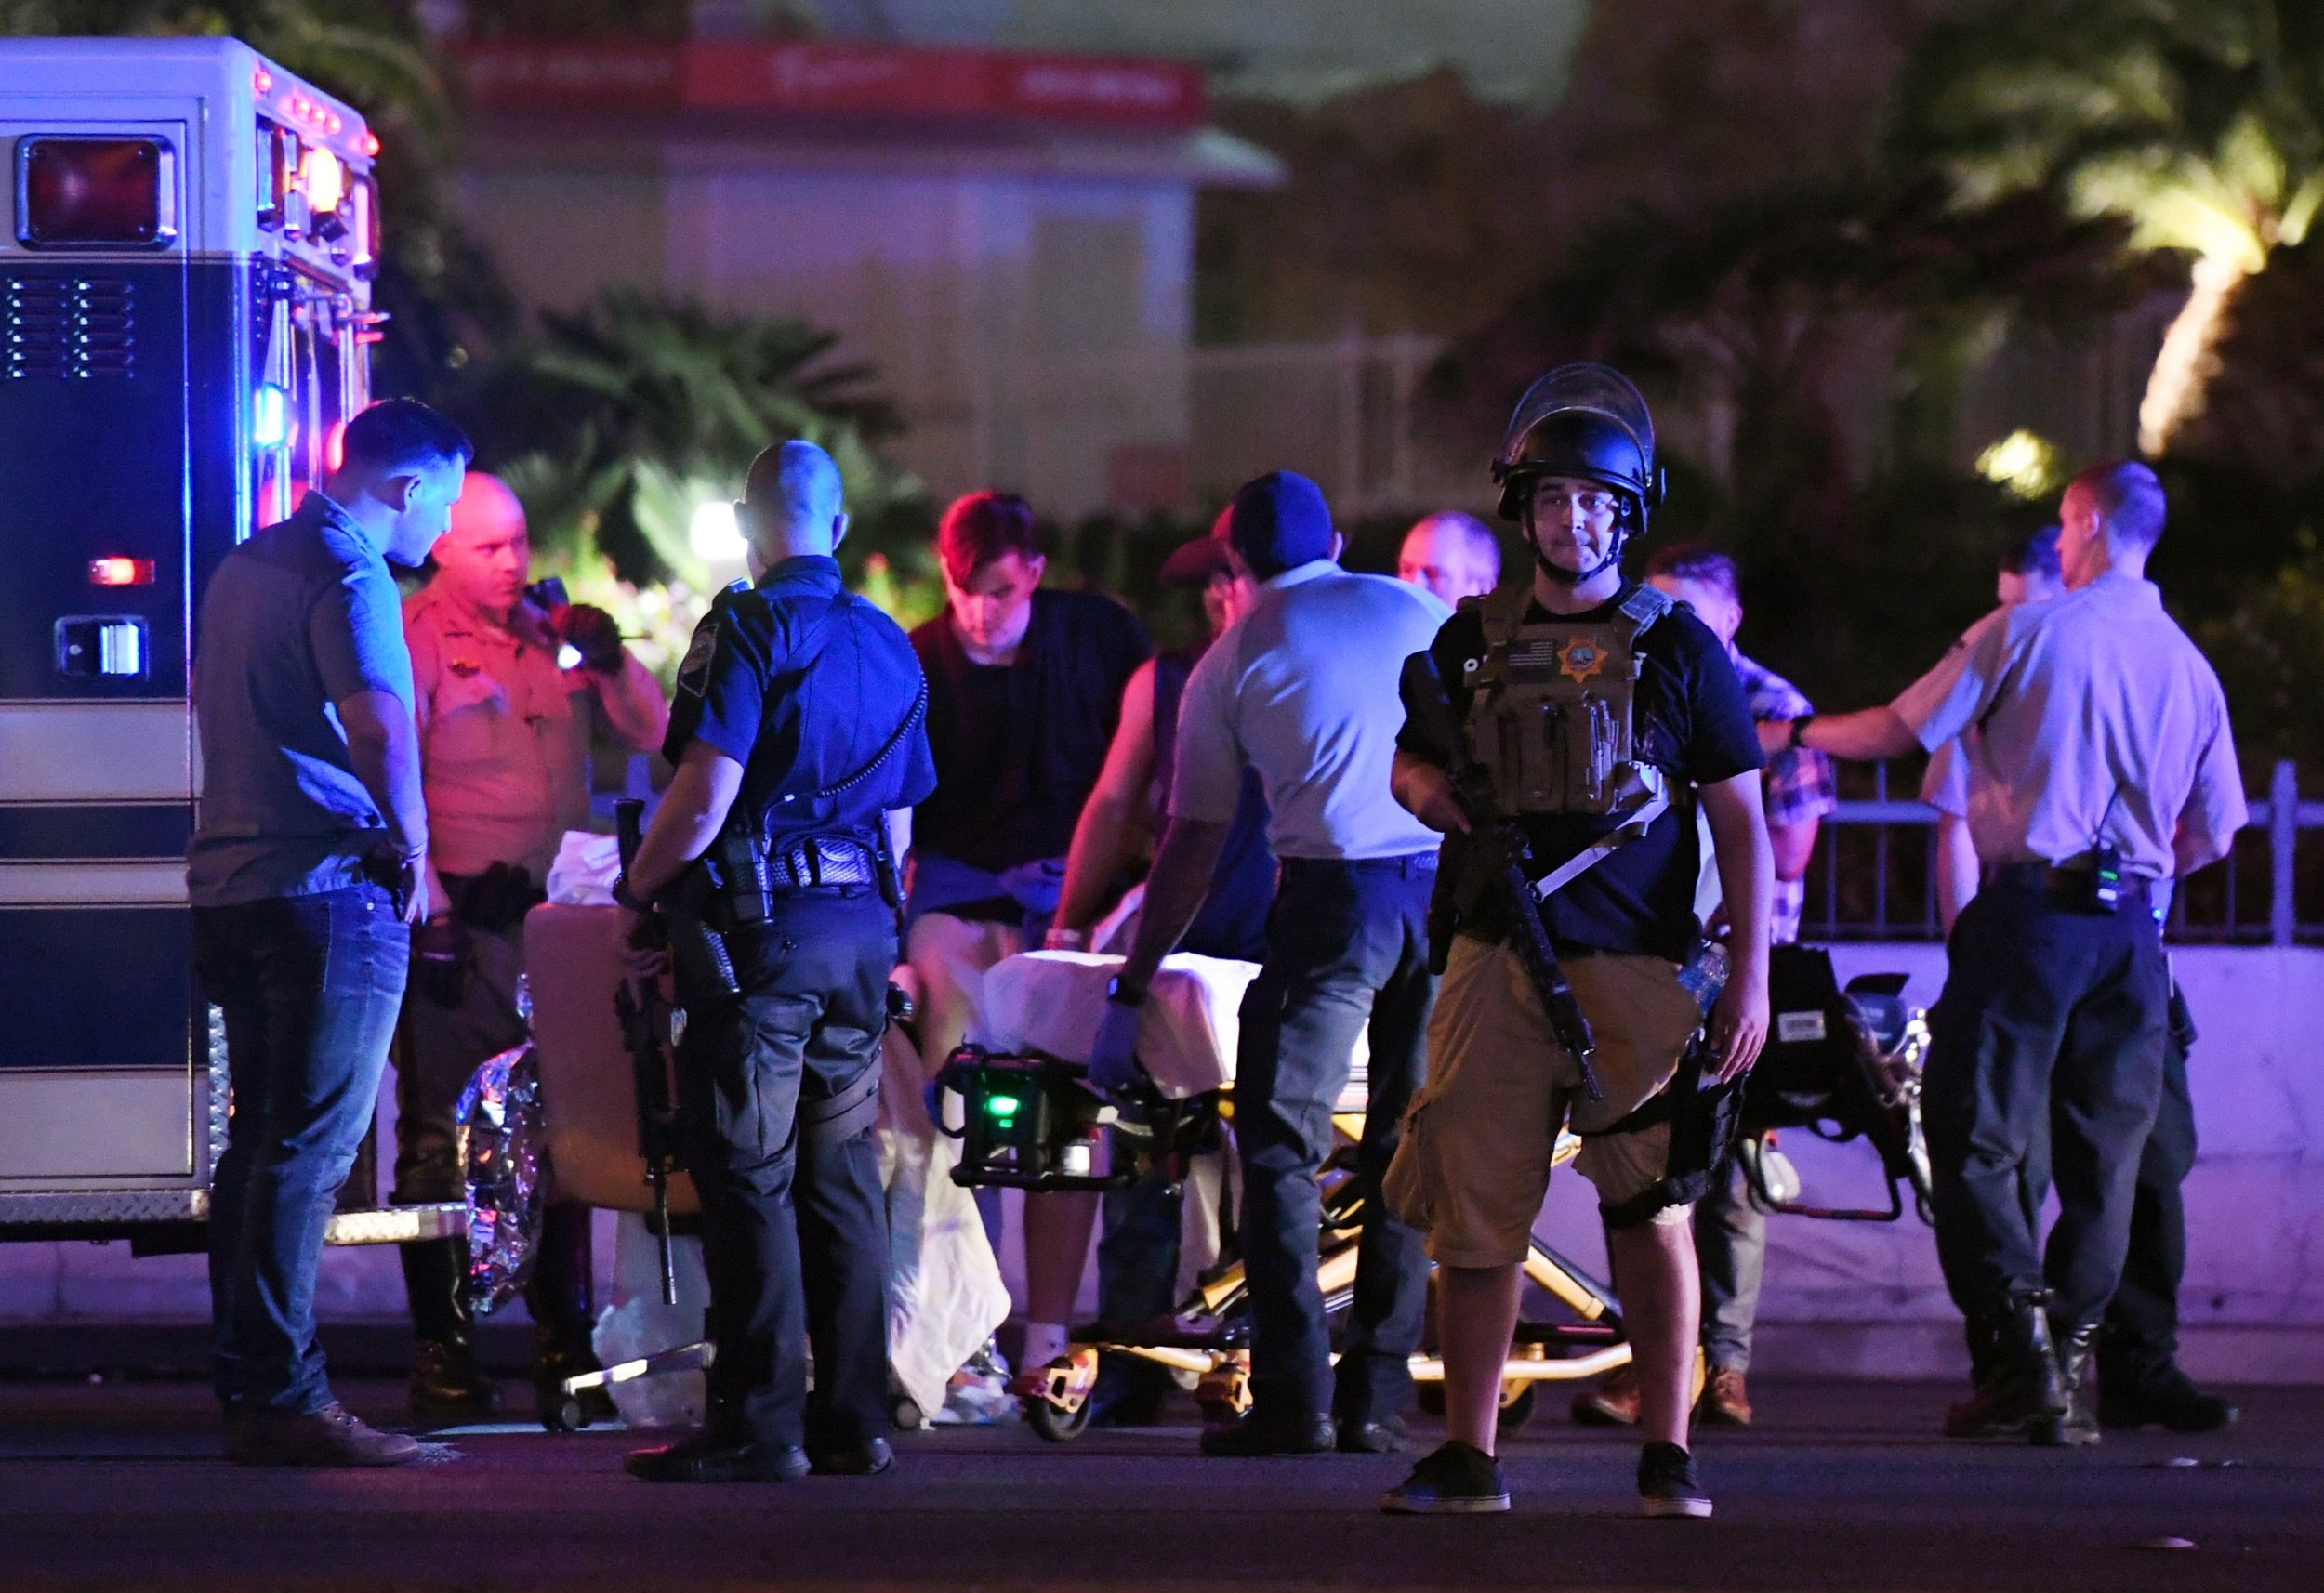 10_02_stephenpaddock_Neighbors_LasVegasShooting